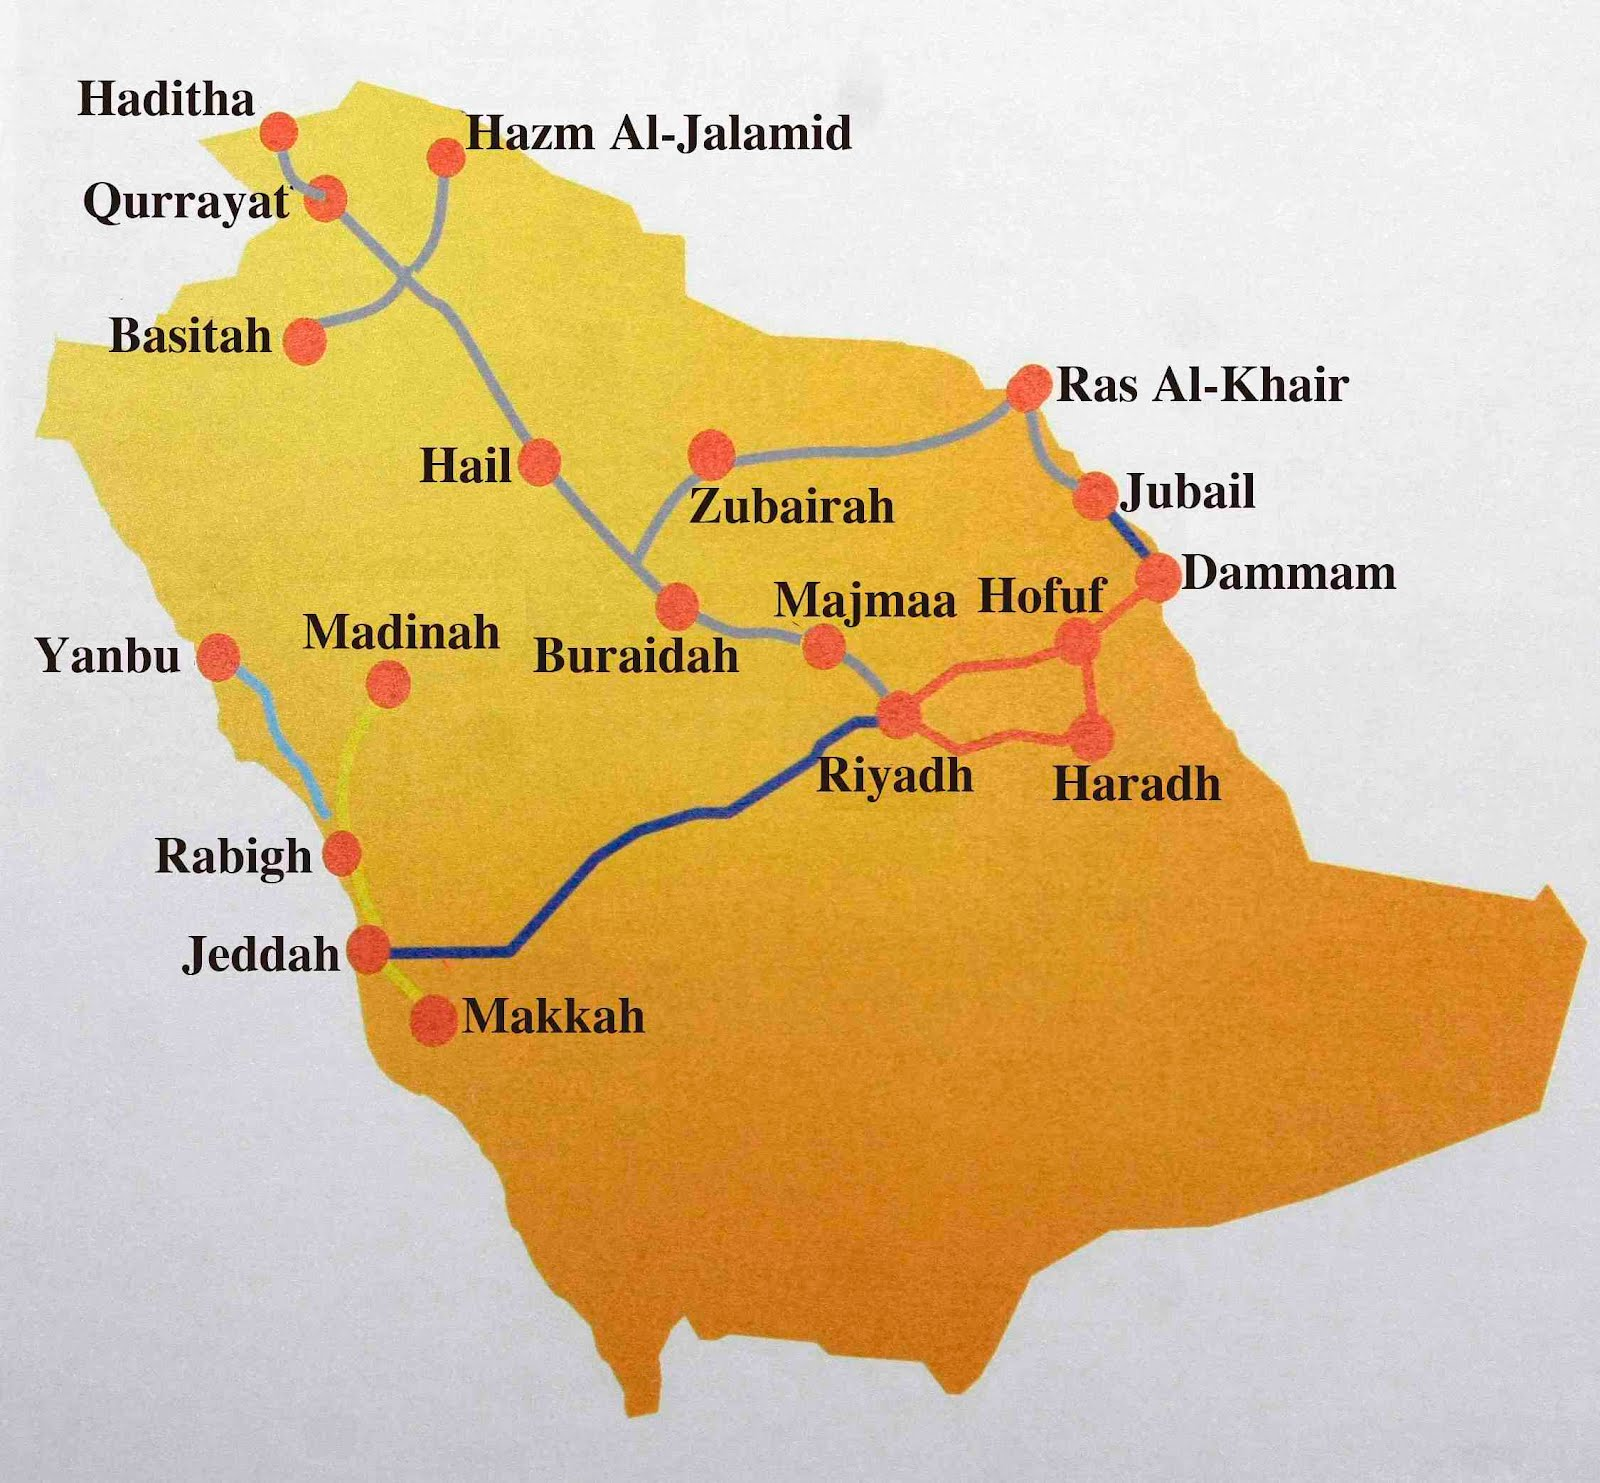 Travel Time From Jeddah To Madinah